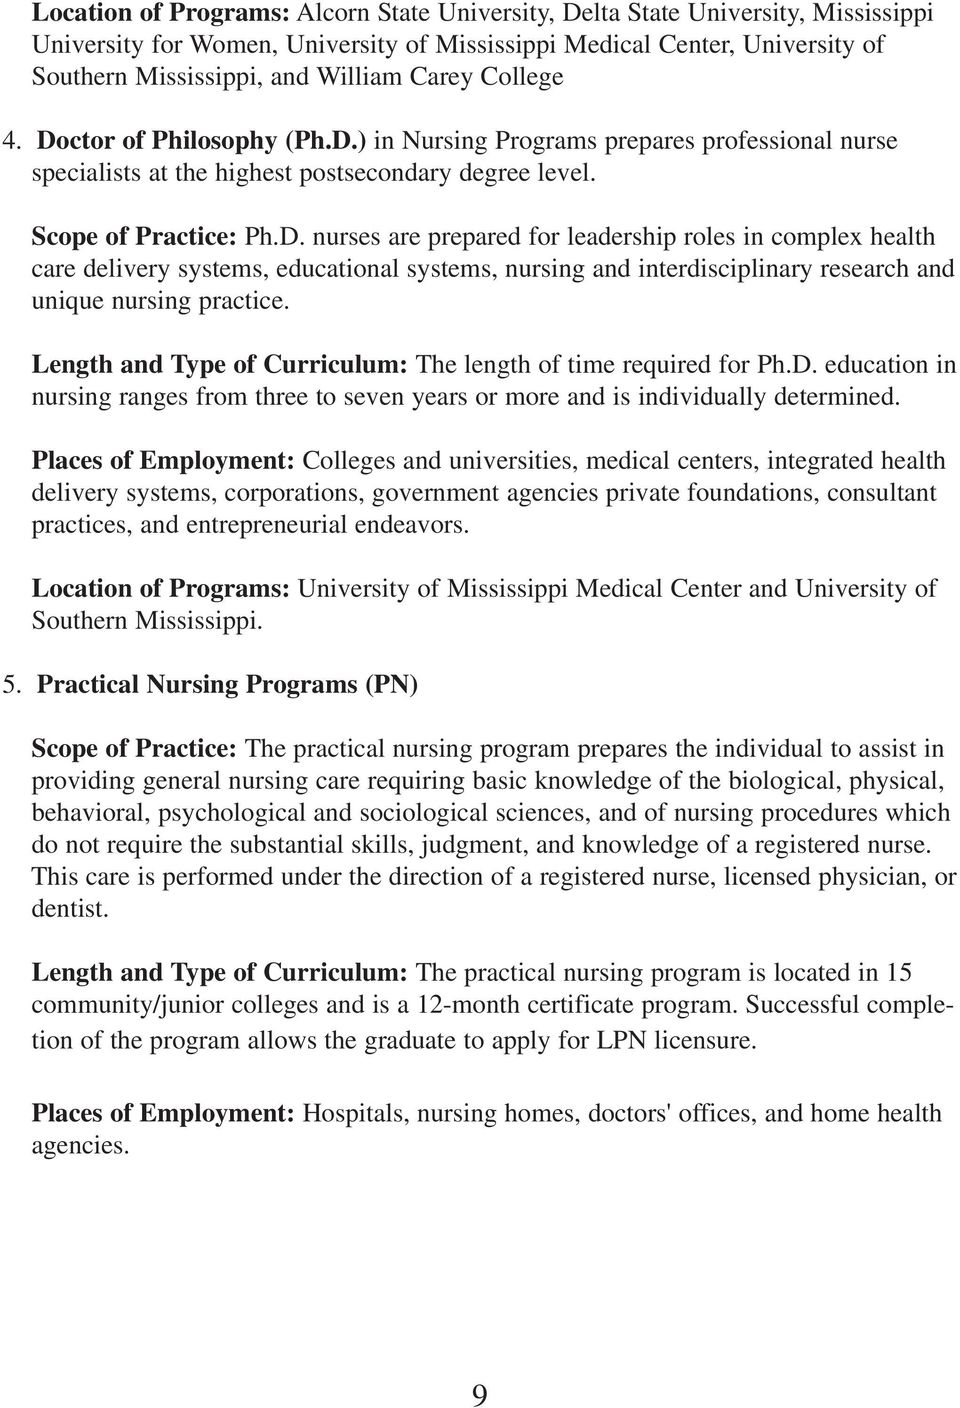 Length and Type of Curriculum: The length of time required for Ph.D. education in nursing ranges from three to seven years or more and is individually determined.